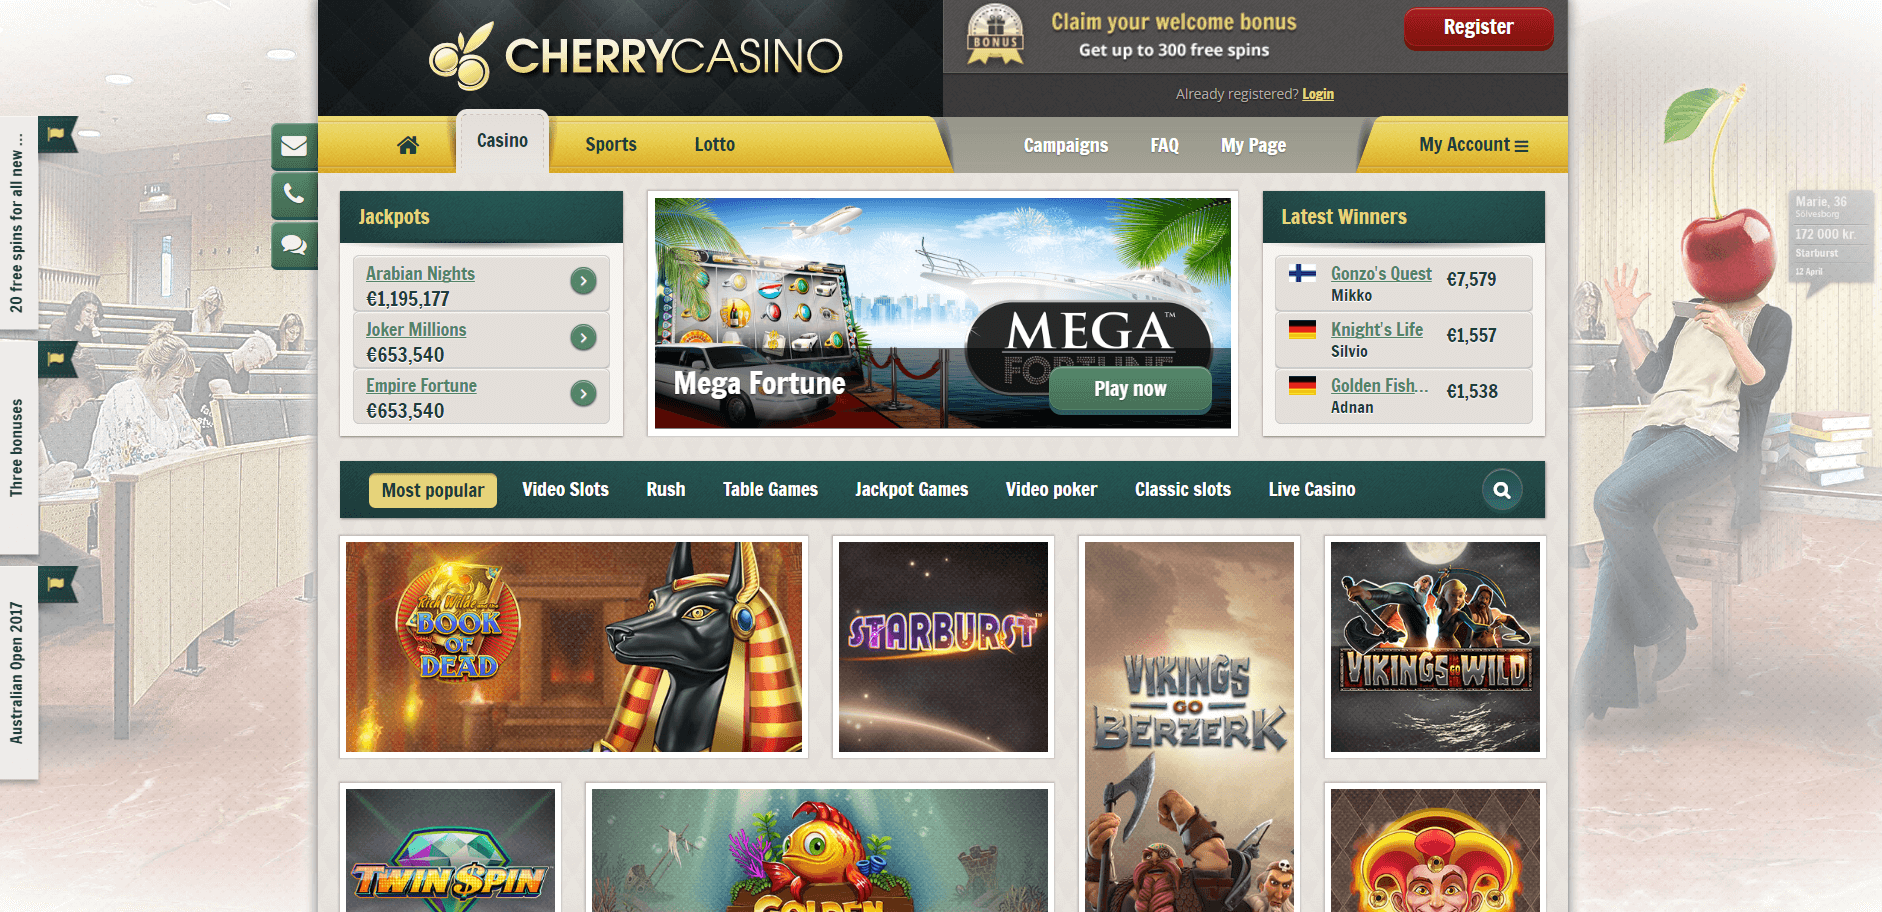 An image of the Cherry Casino Website casino page